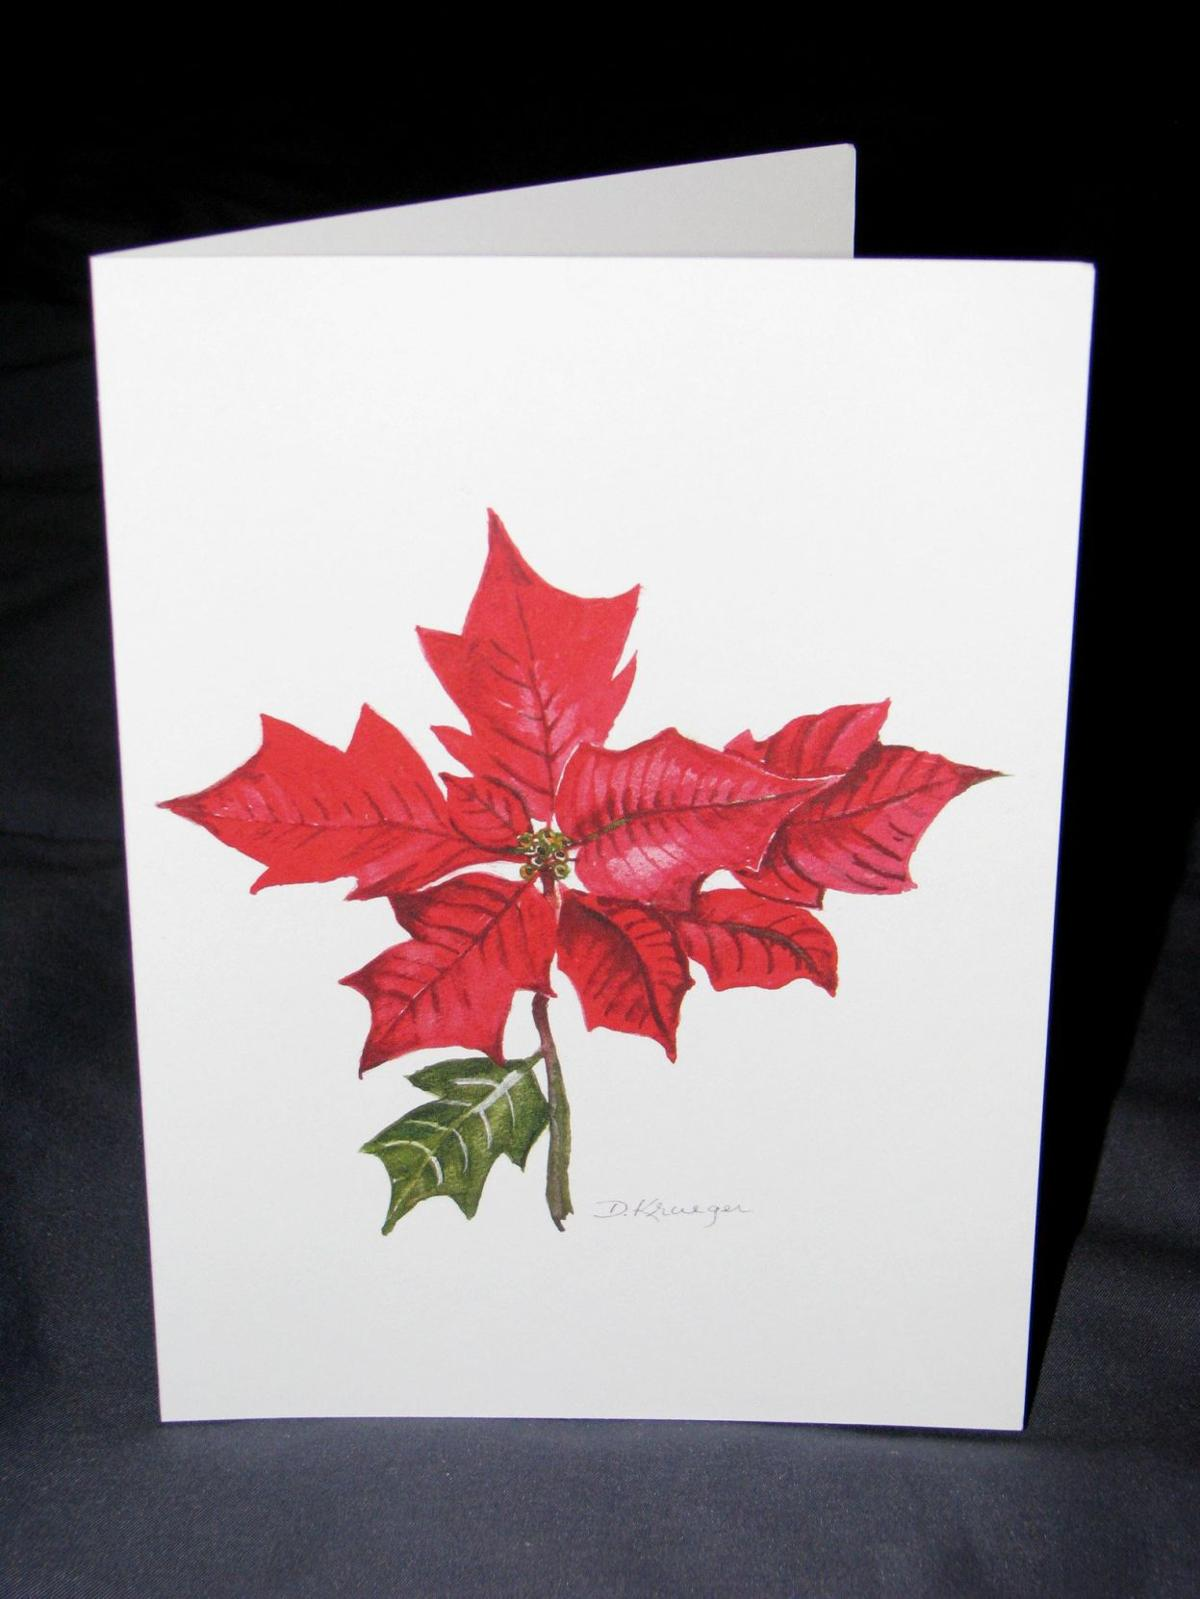 Send cheer and give too with these holiday cards | Holidays ...